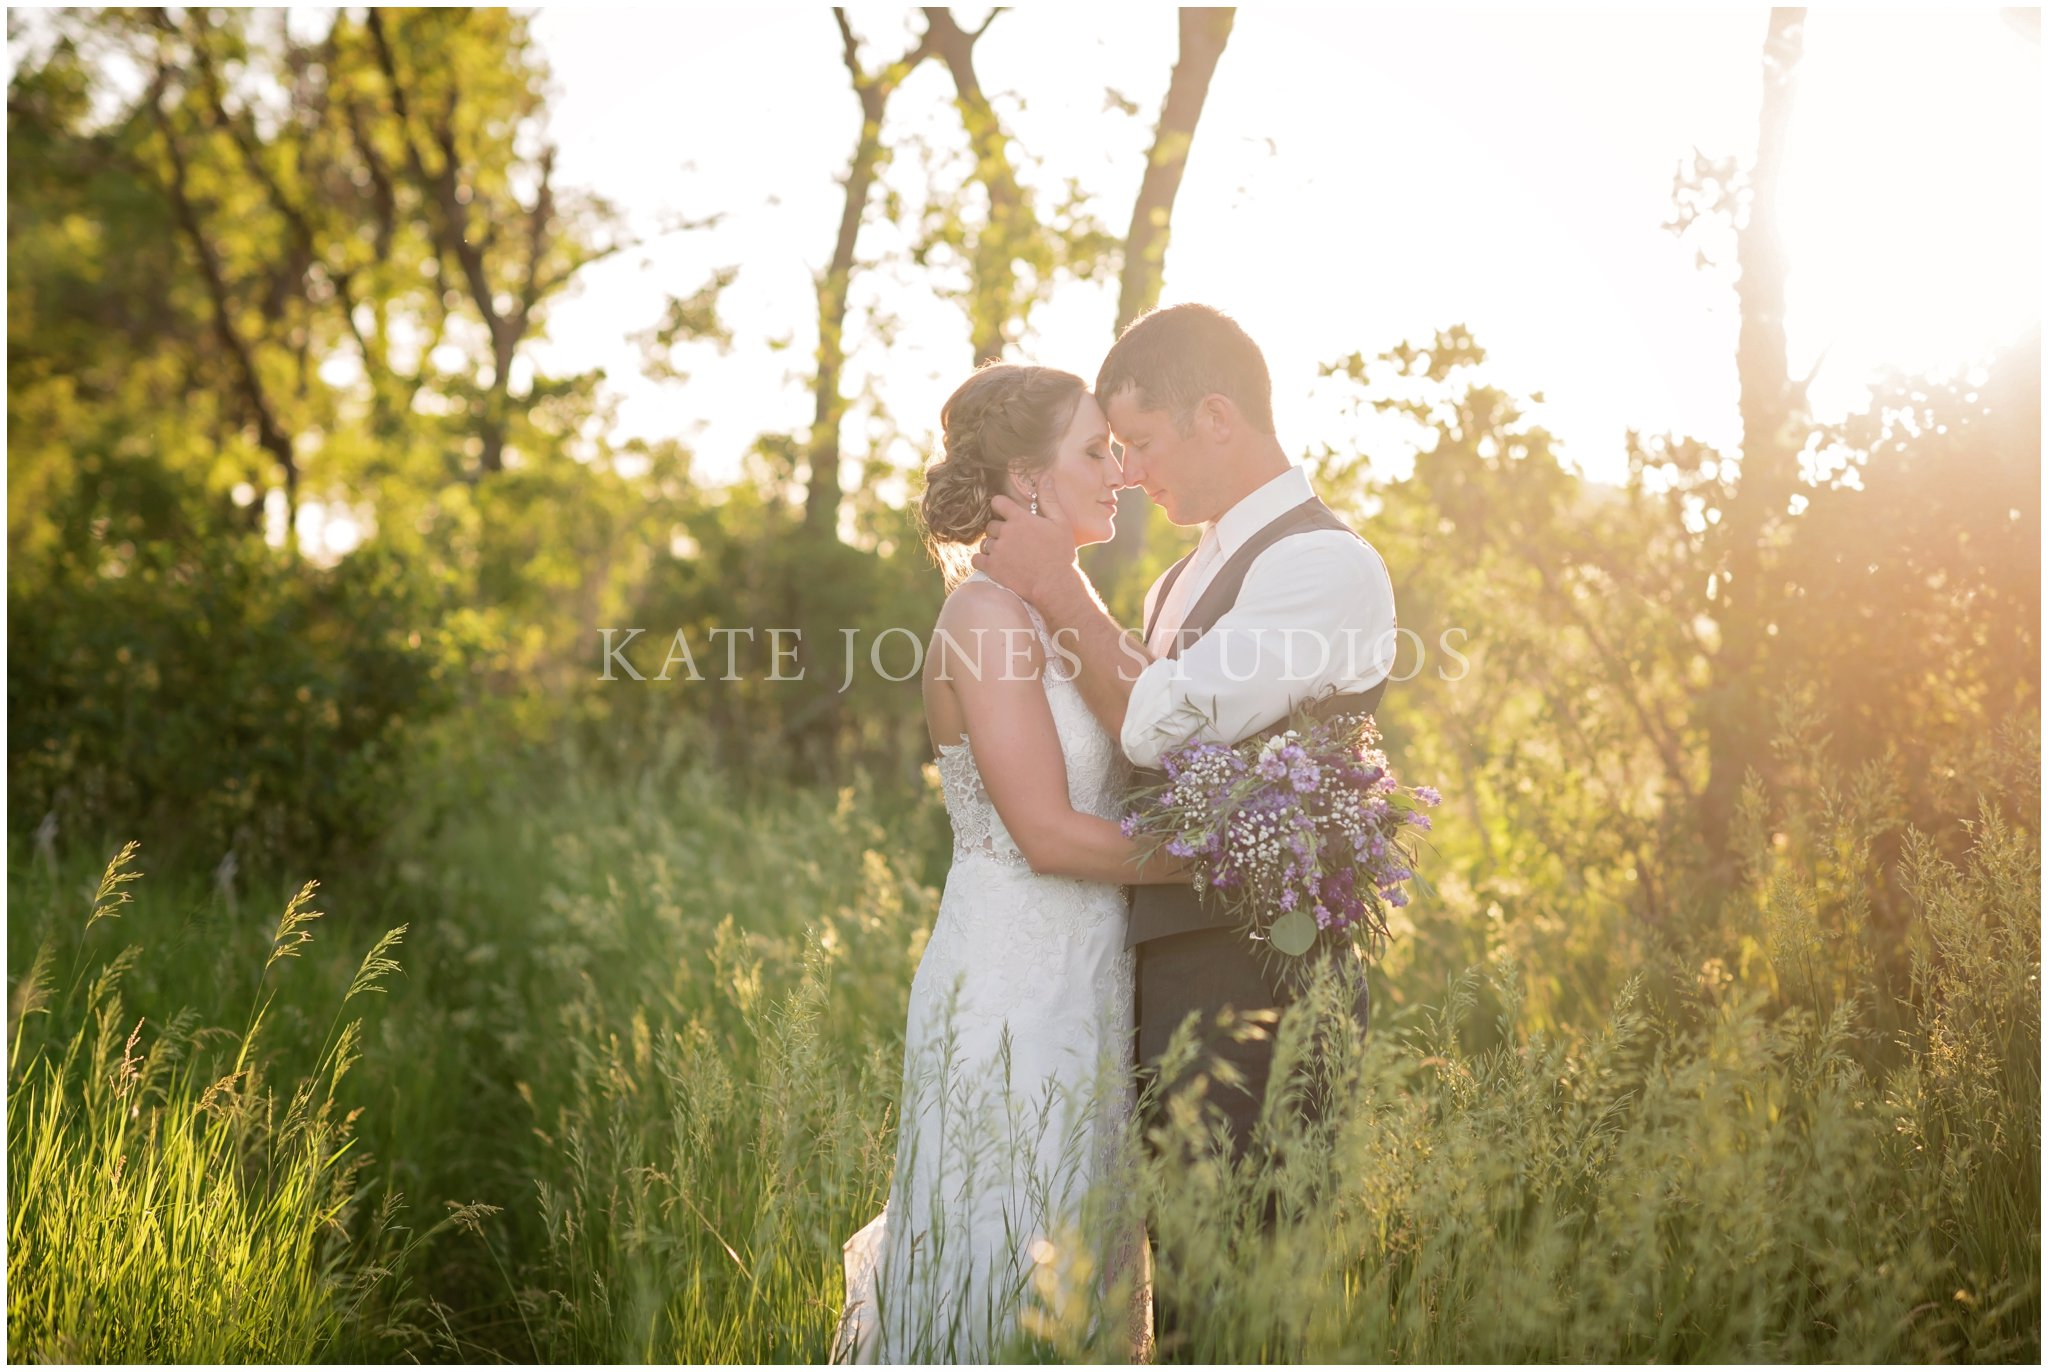 private moment for bride and groom at sunset